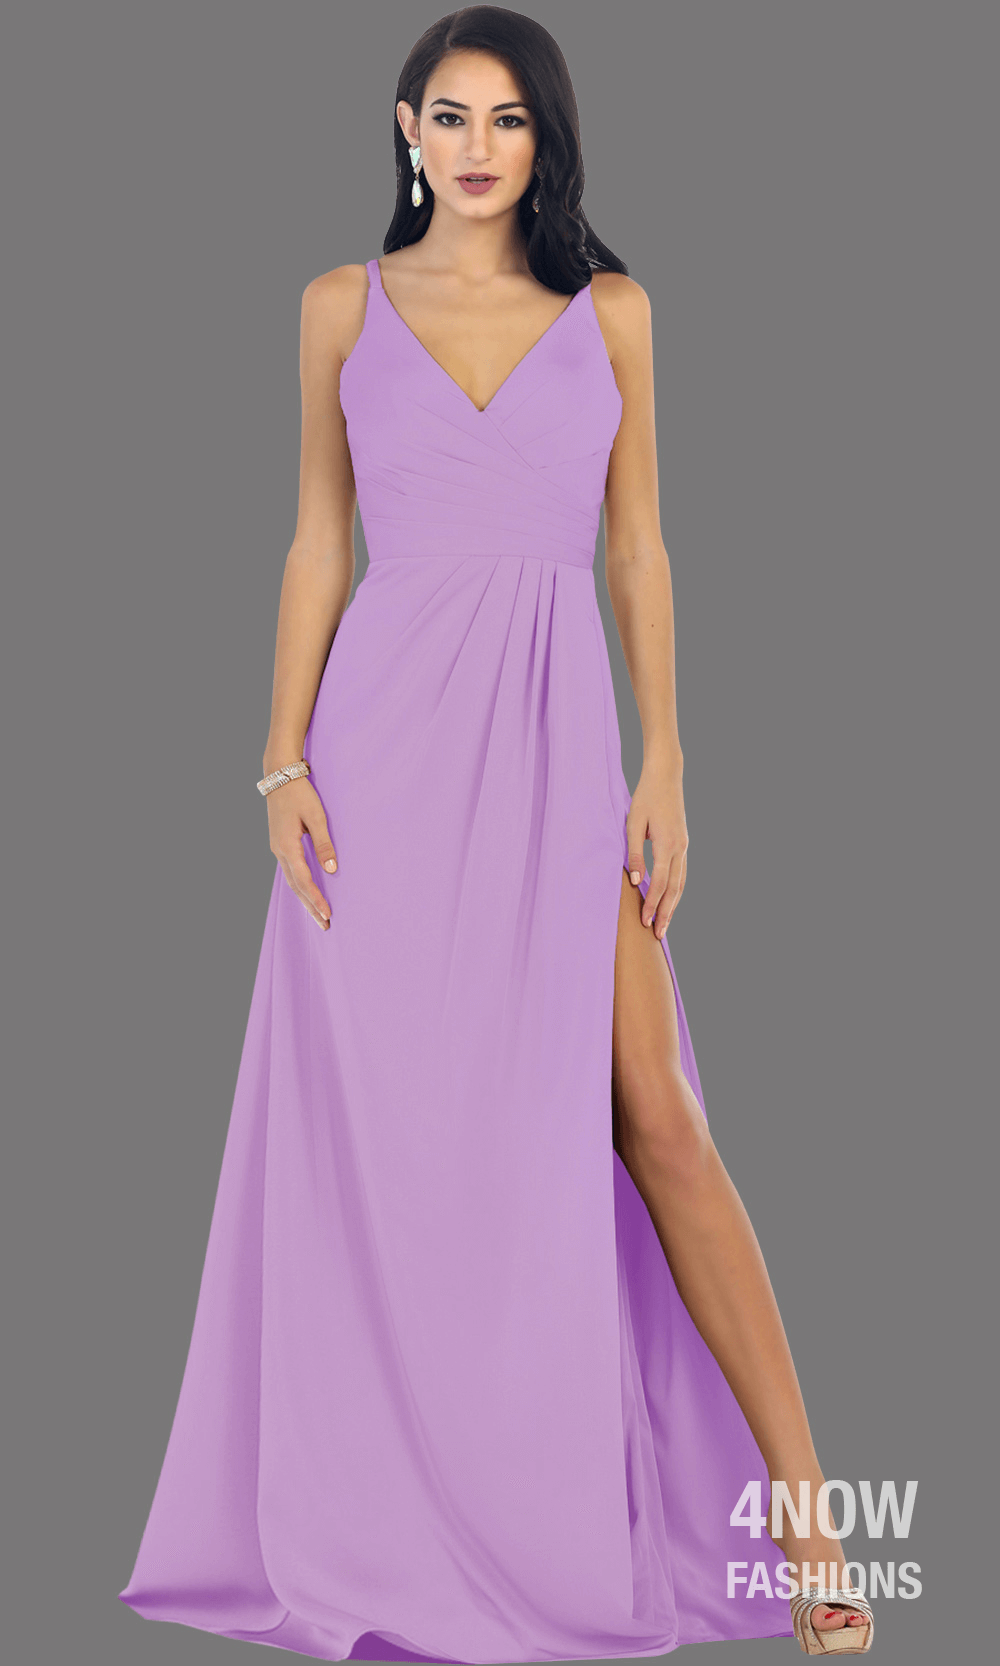 Eggplant High Slit Fitted Dress